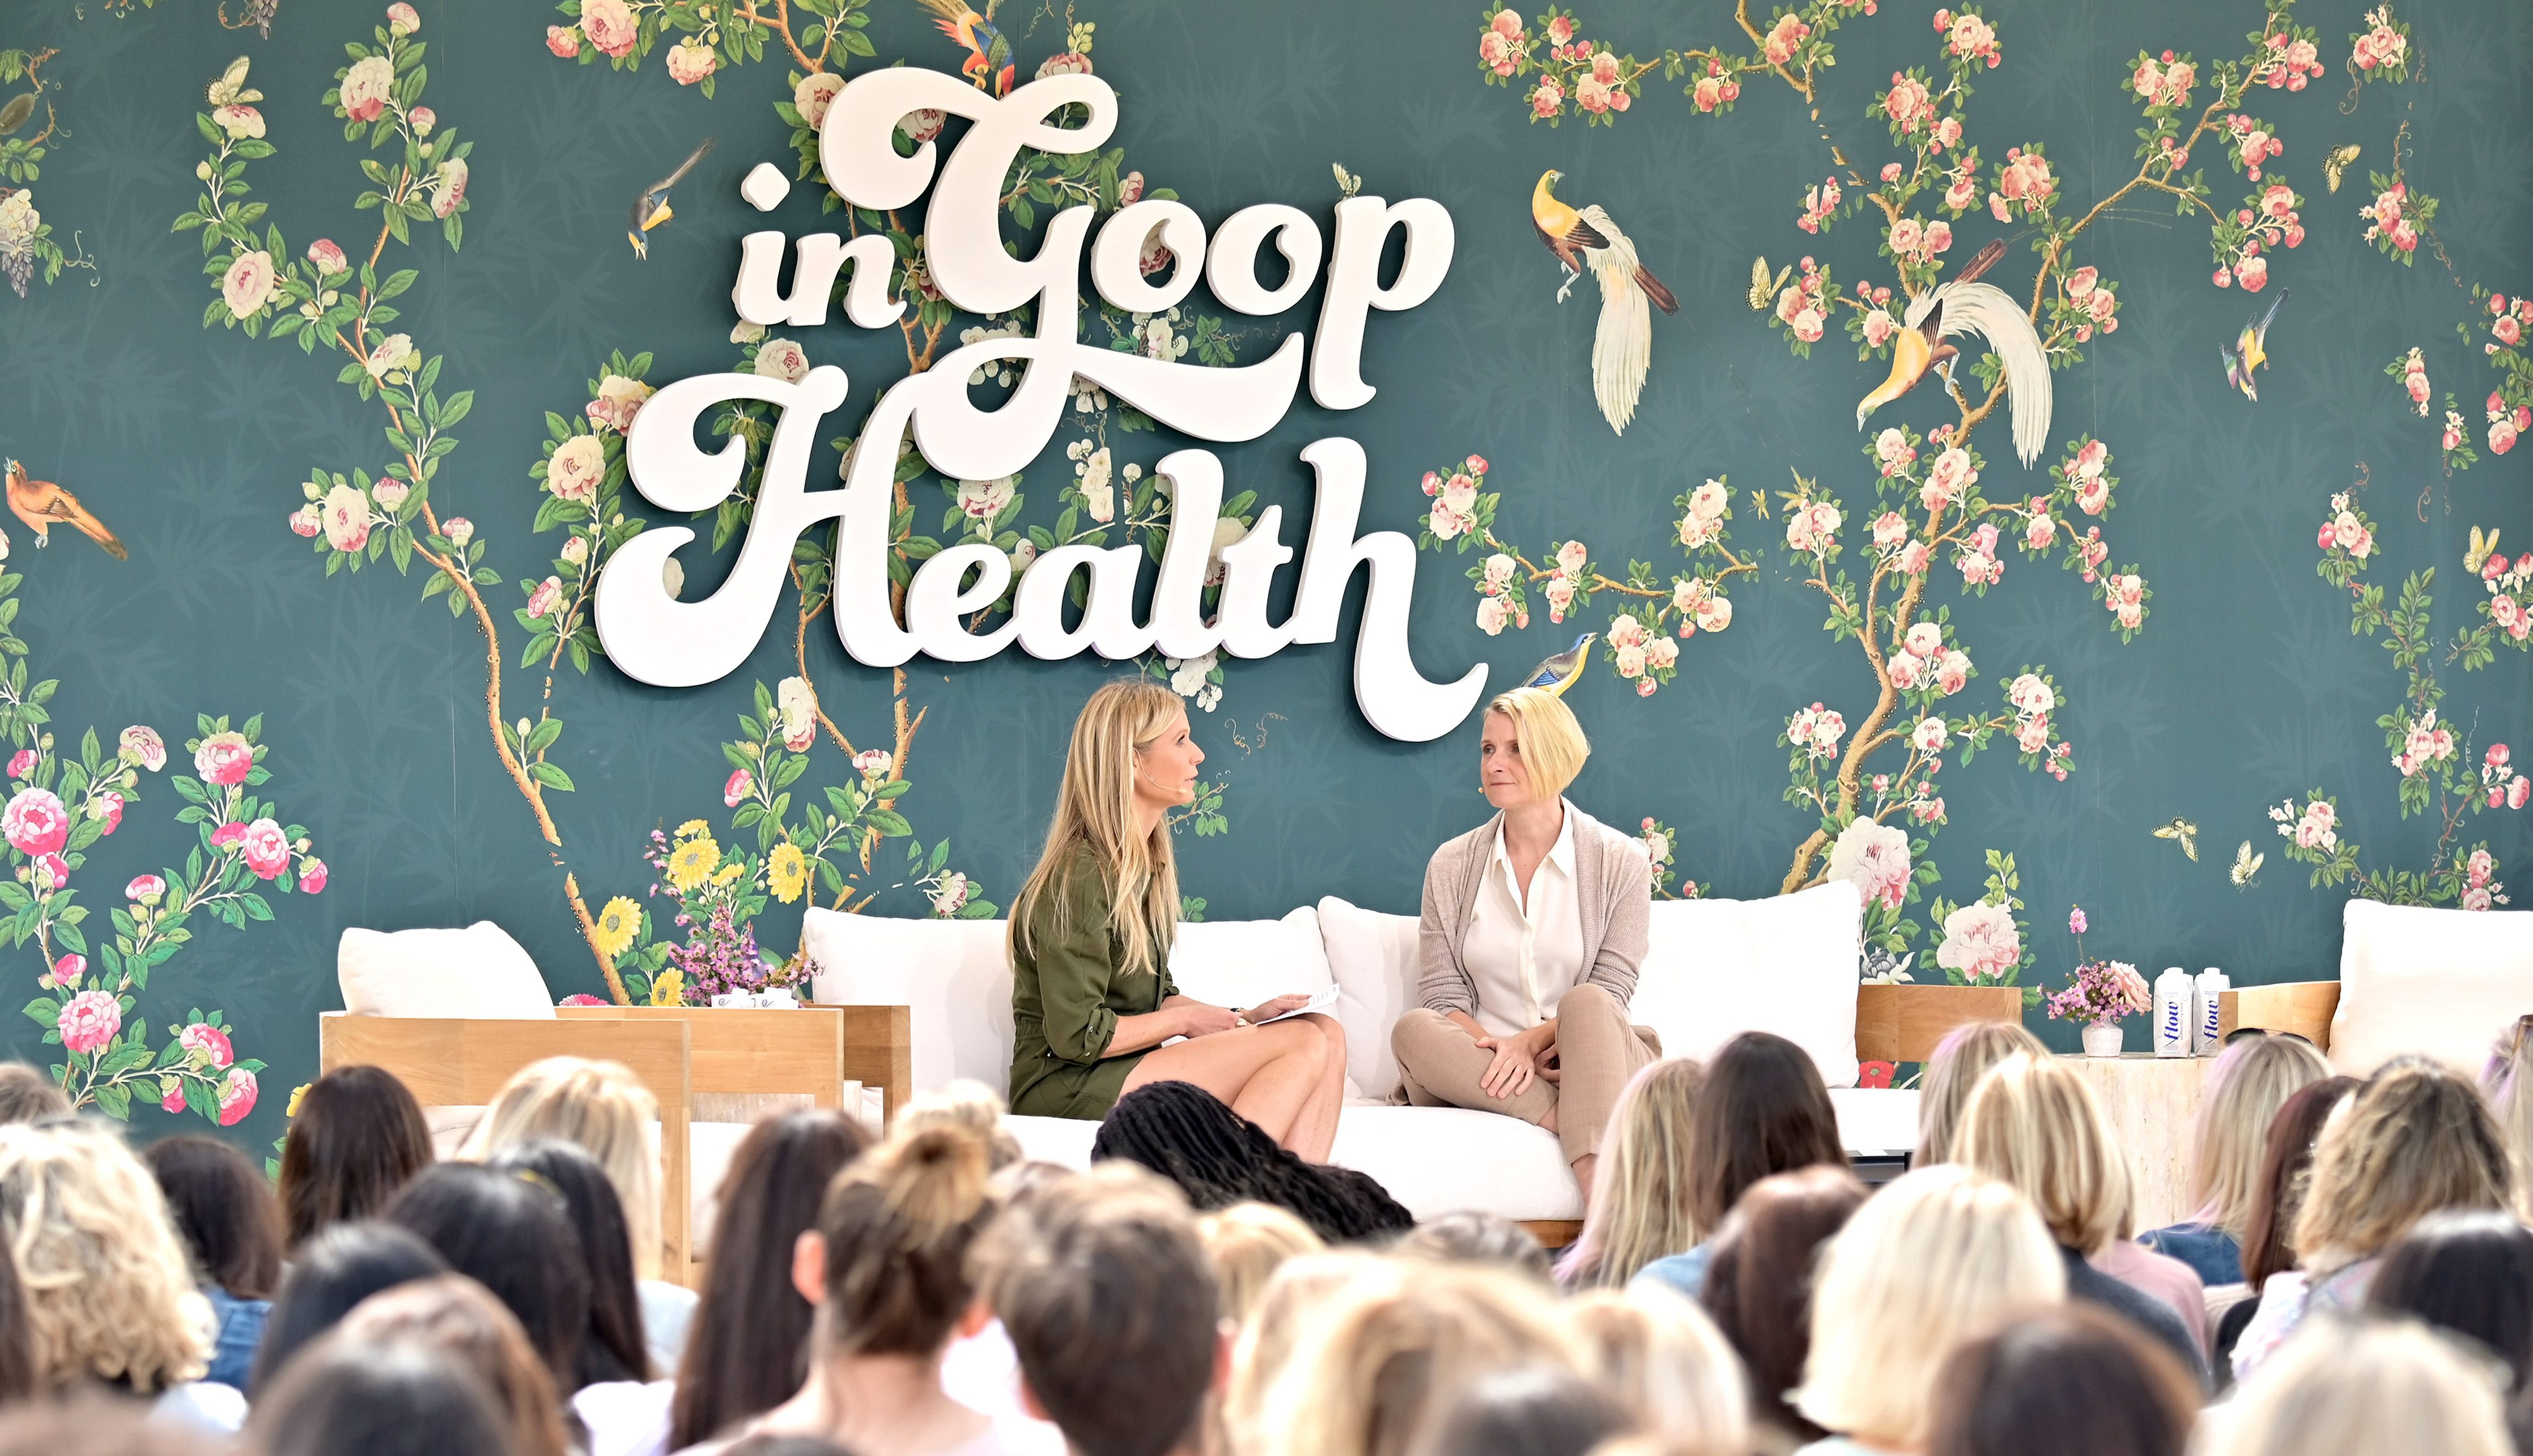 LOS ANGELES, CALIFORNIA - MAY 18: (L-R) goop CEO Gwyneth Paltrow and Elizabeth Gilbert speak onstage at In goop Health Summit Los Angeles 2019 at Rolling Greens Nursery on May 18, 2019 in Los Angeles, California. (Photo by Neilson Barnard/Getty Images for goop)